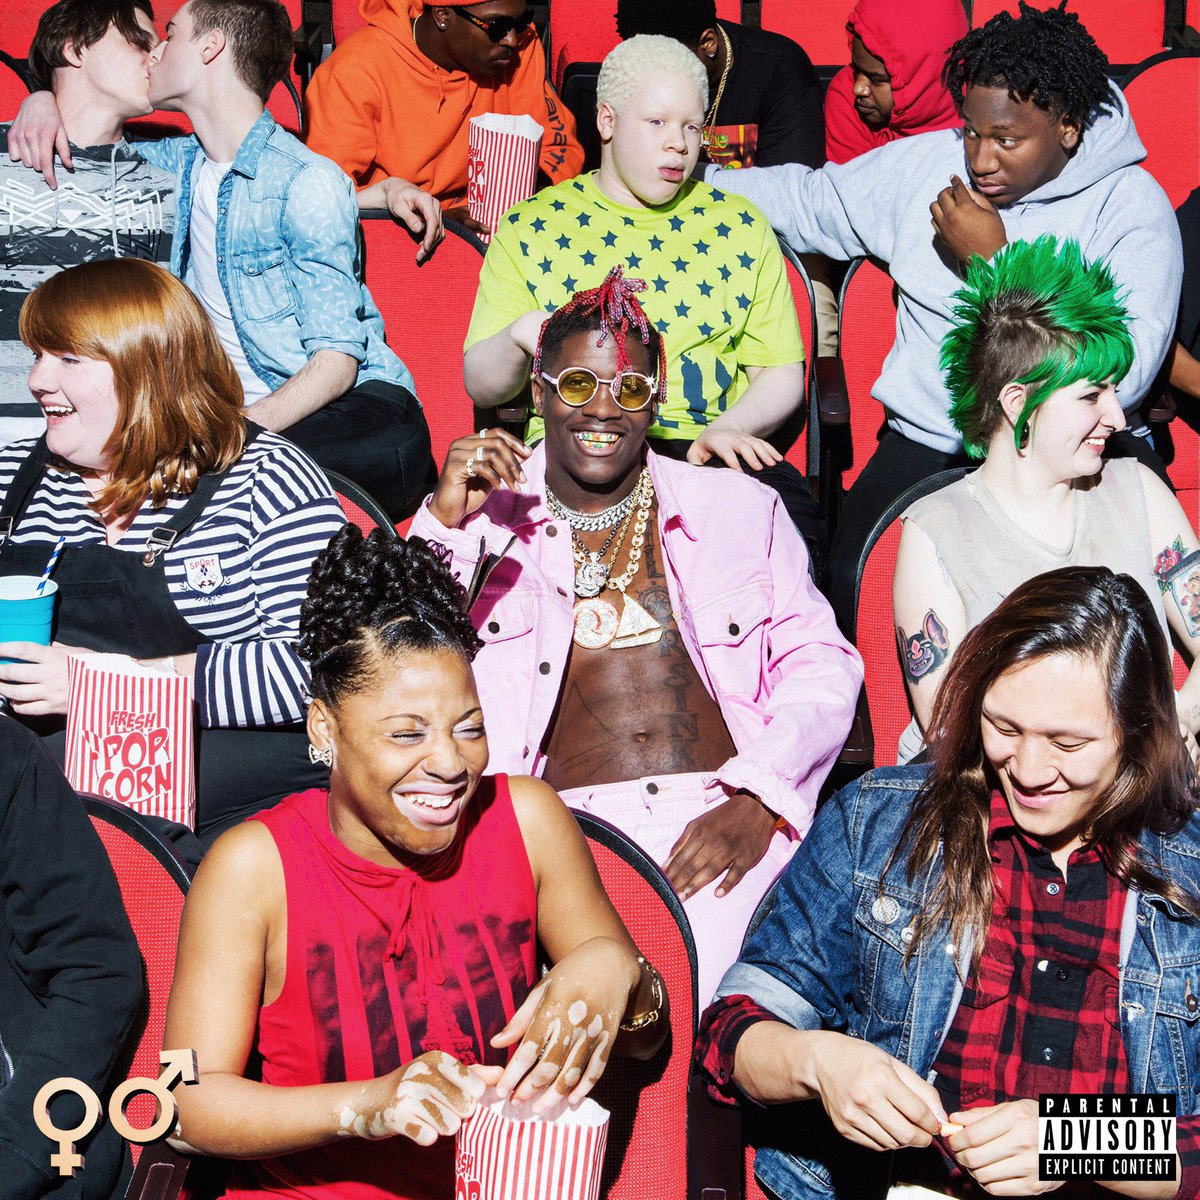 ".@lilyachty teams up with @EvanderGriiim for new single, ""X Men."" https://t.co/hdBA406xN4 https://t.co/srSSaH0Vv2"